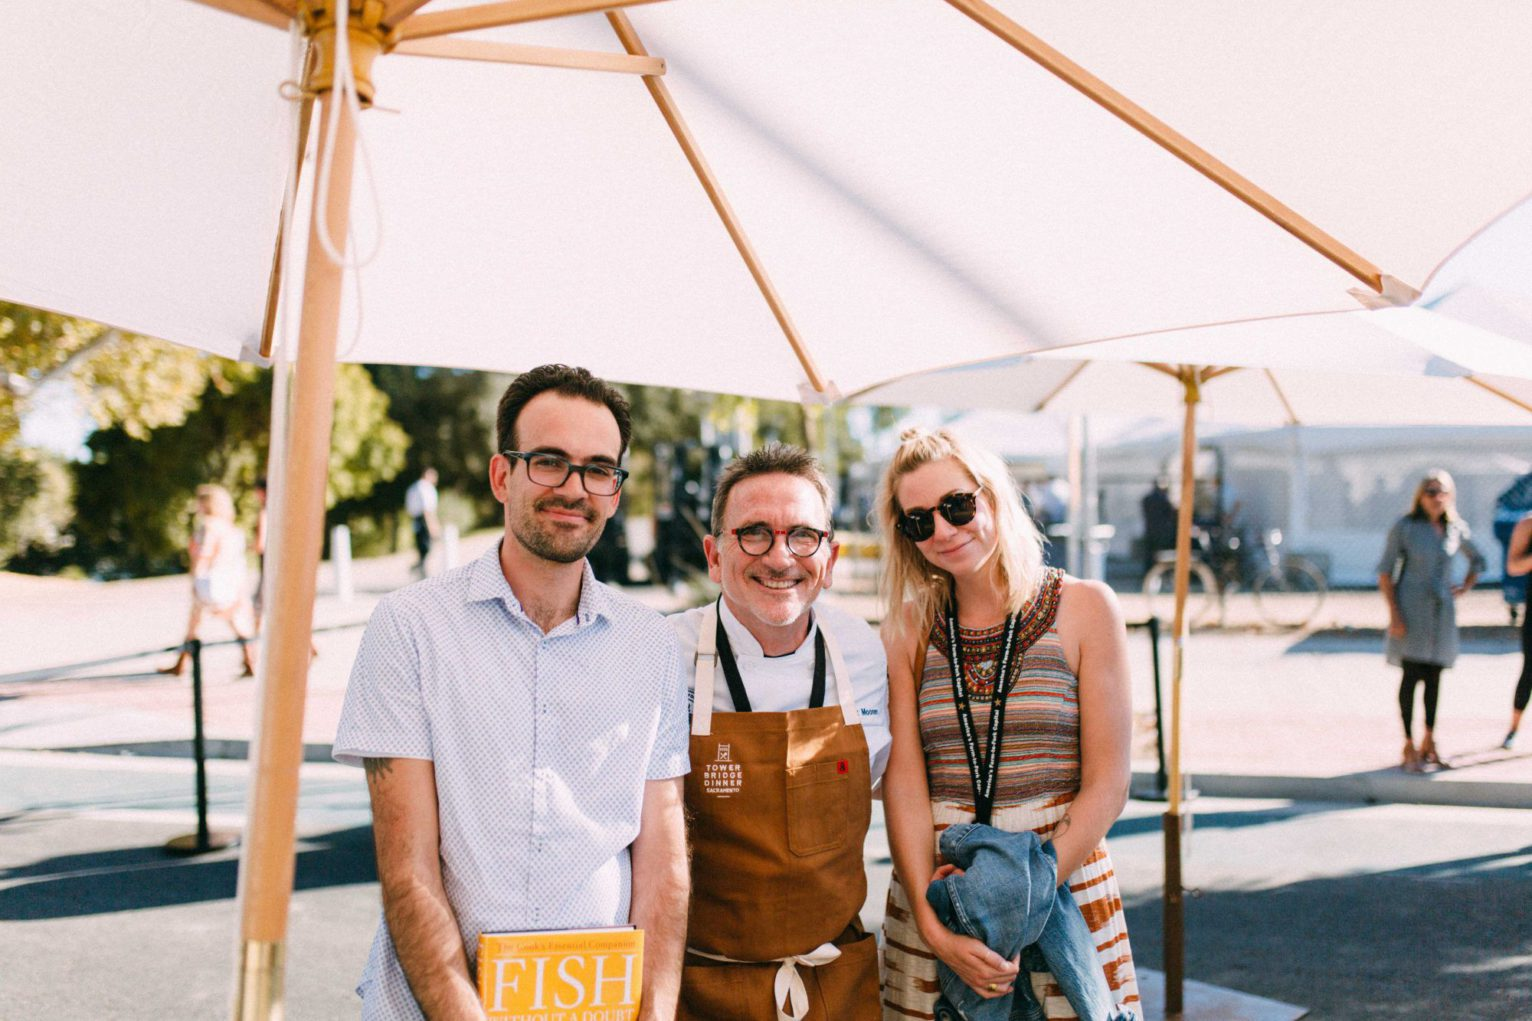 Chef Rick Moonen with Grady, Art Director and Ashley, Senior Graphic Designer